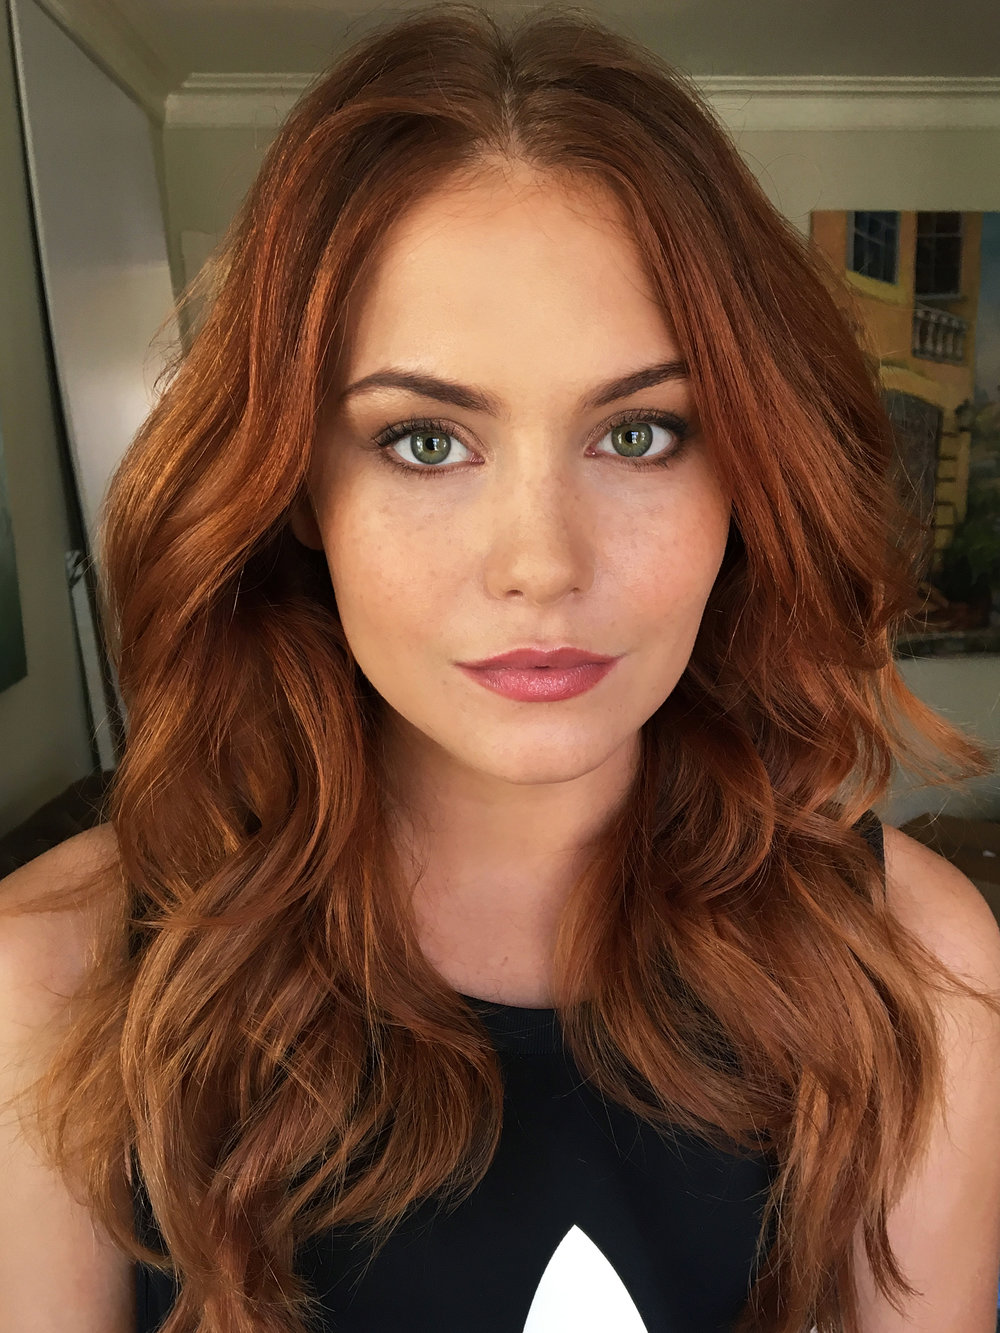 Redhead beauty green eyes Makeup and hair by Agne Skaringa Beauty Affair Hollywood LA.jpg